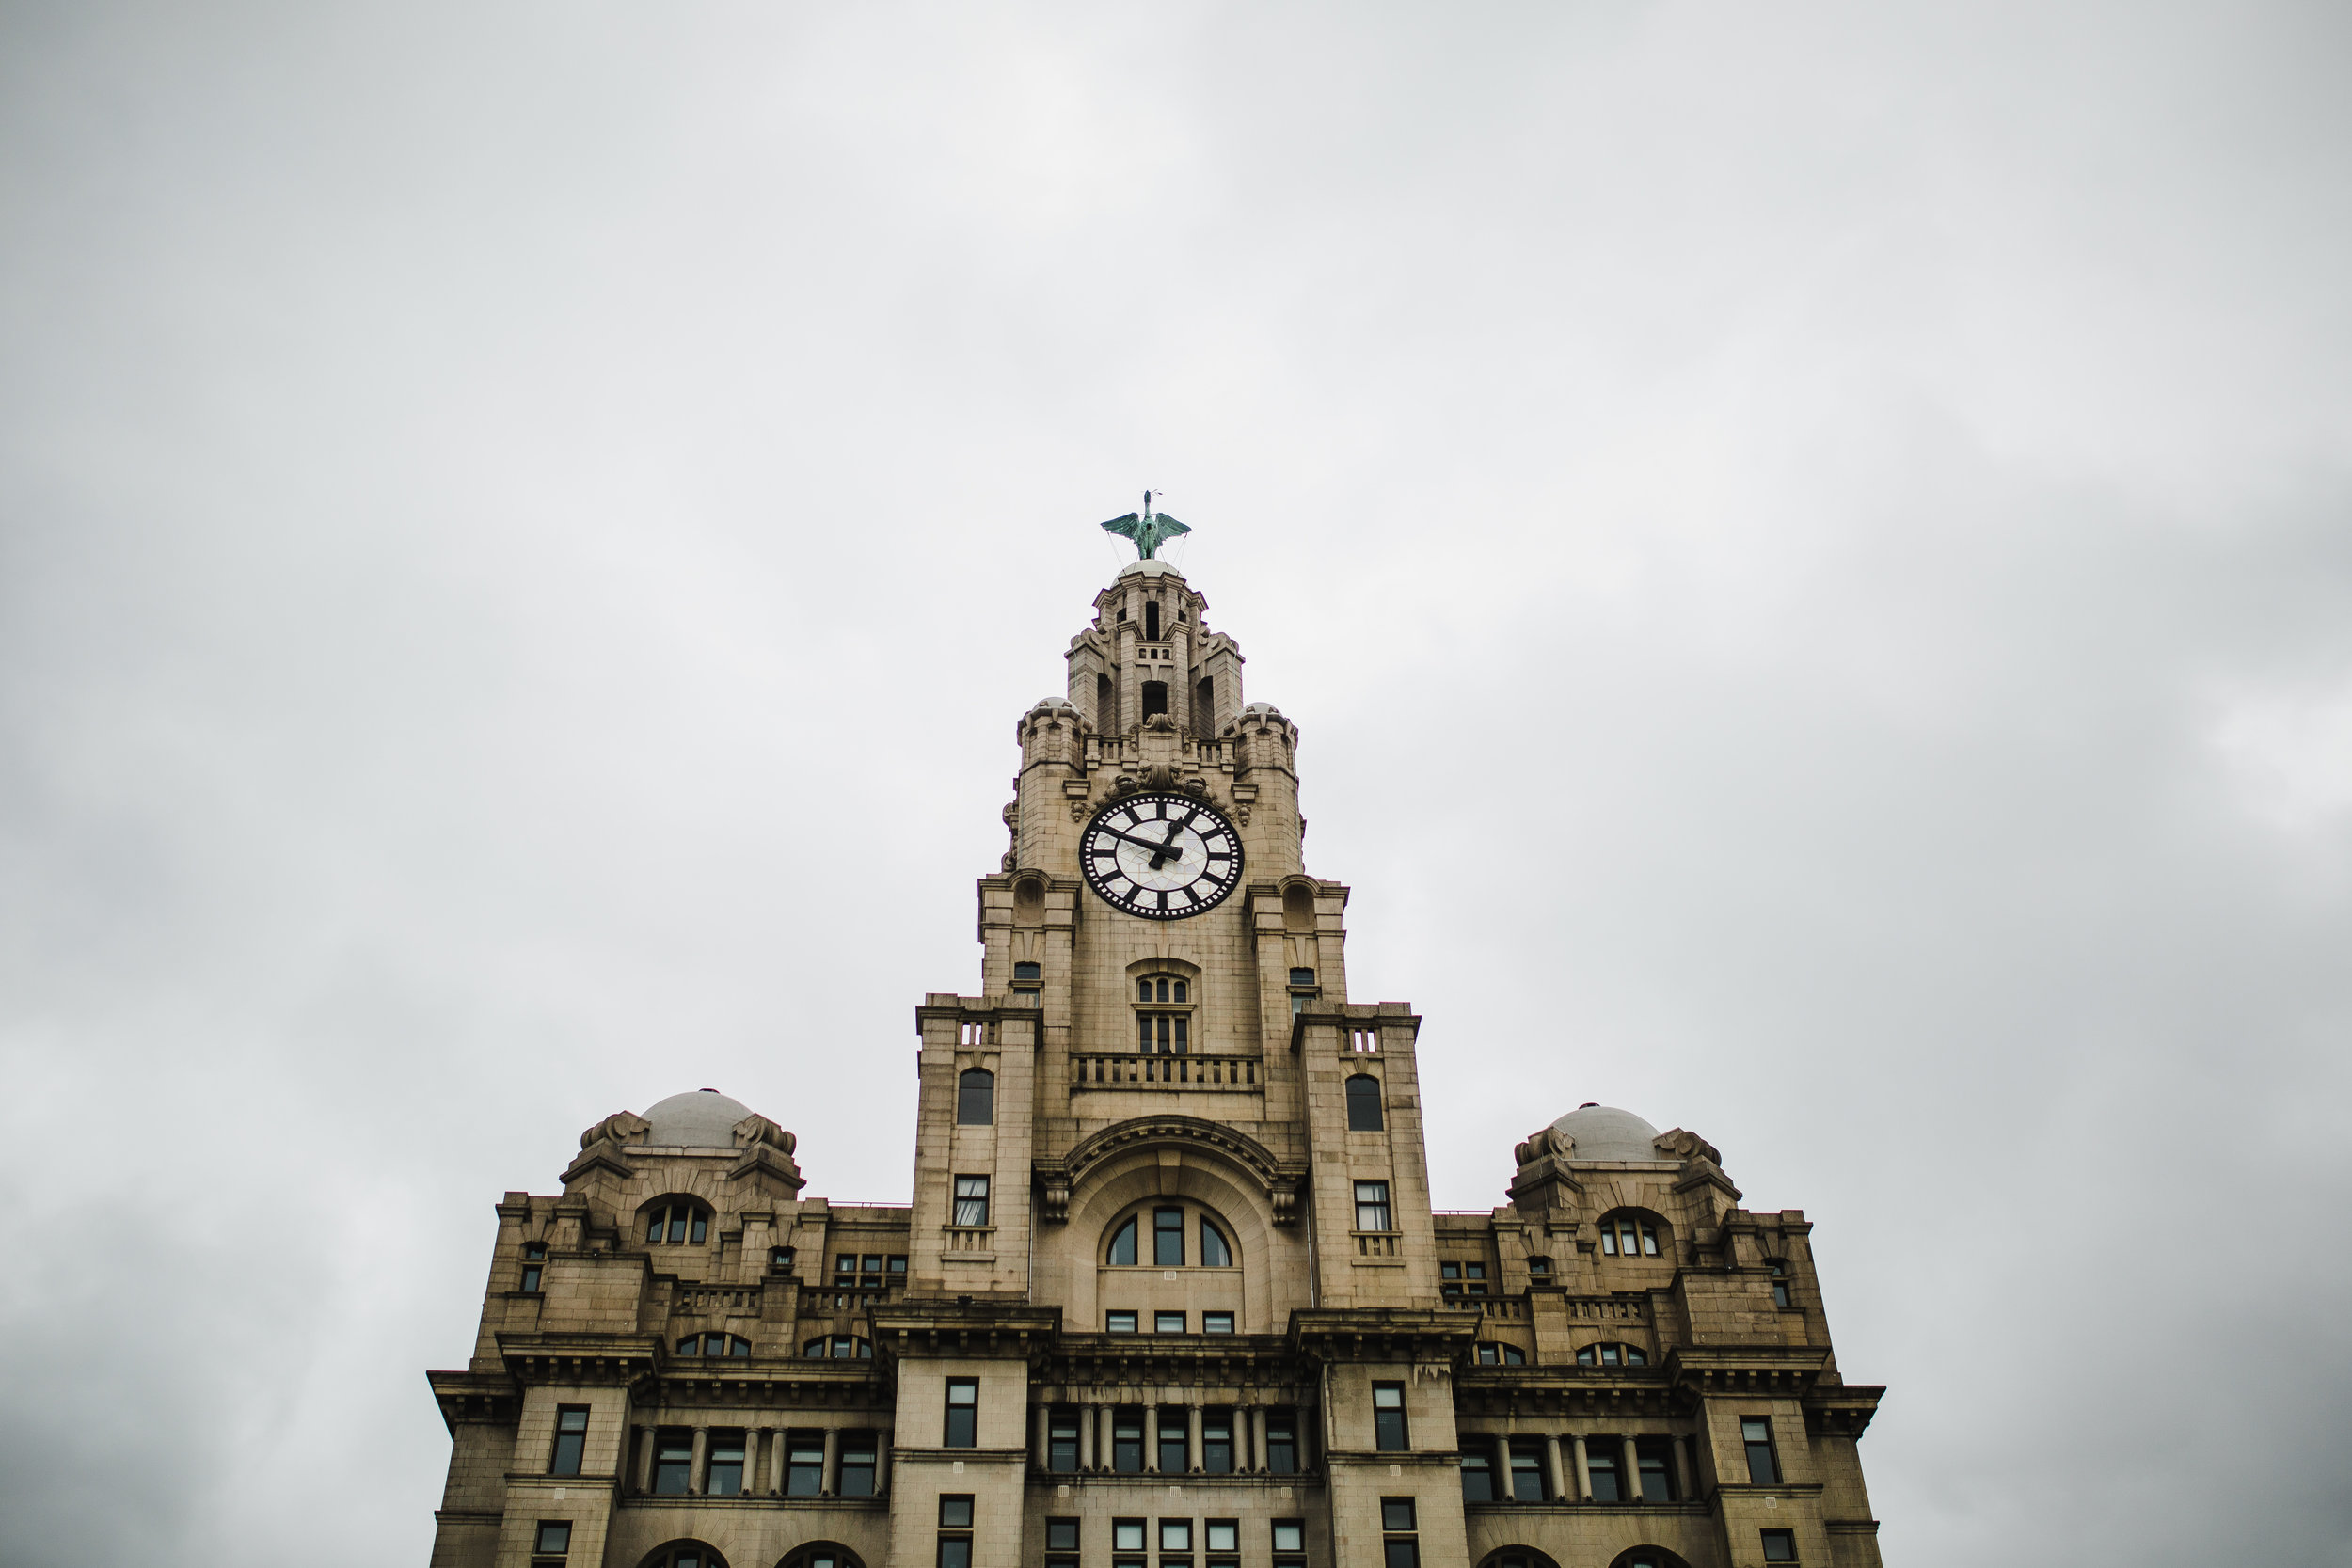 Exterior of the Liver building - Liverpool wedding photographer